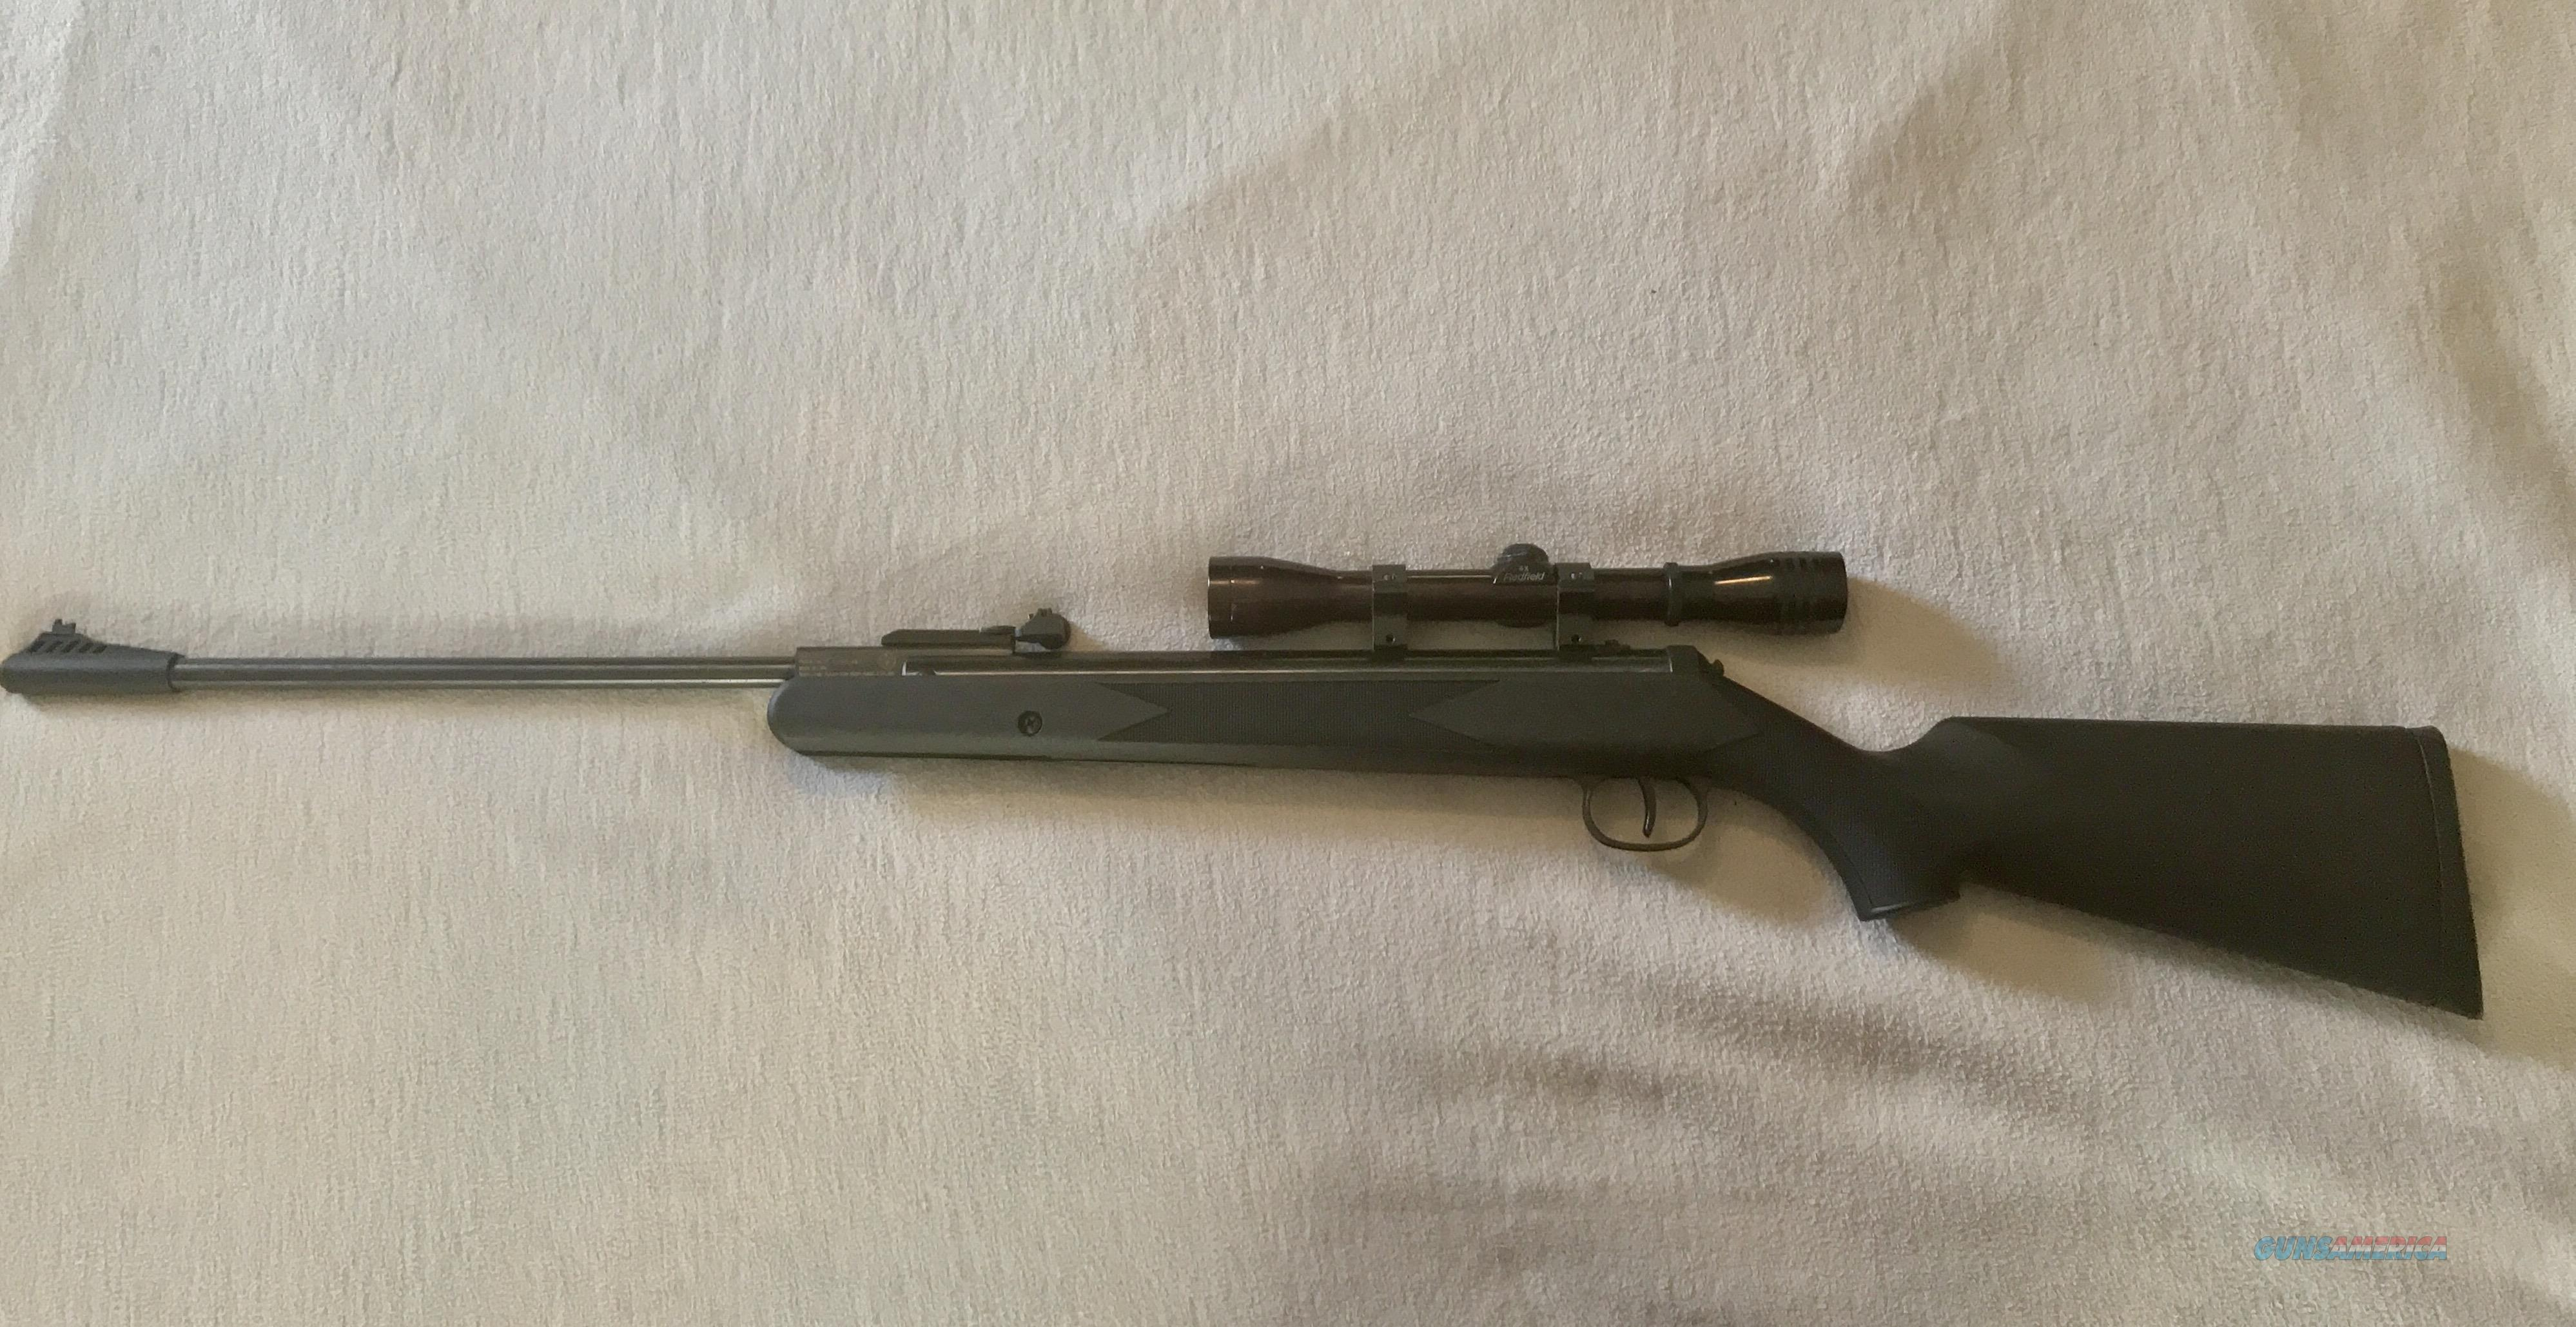 Ruger Blackhawk PELLET Rifle (.177) w Redfield 4x scope  Guns > Rifles > Ruger Rifles > #1 Type